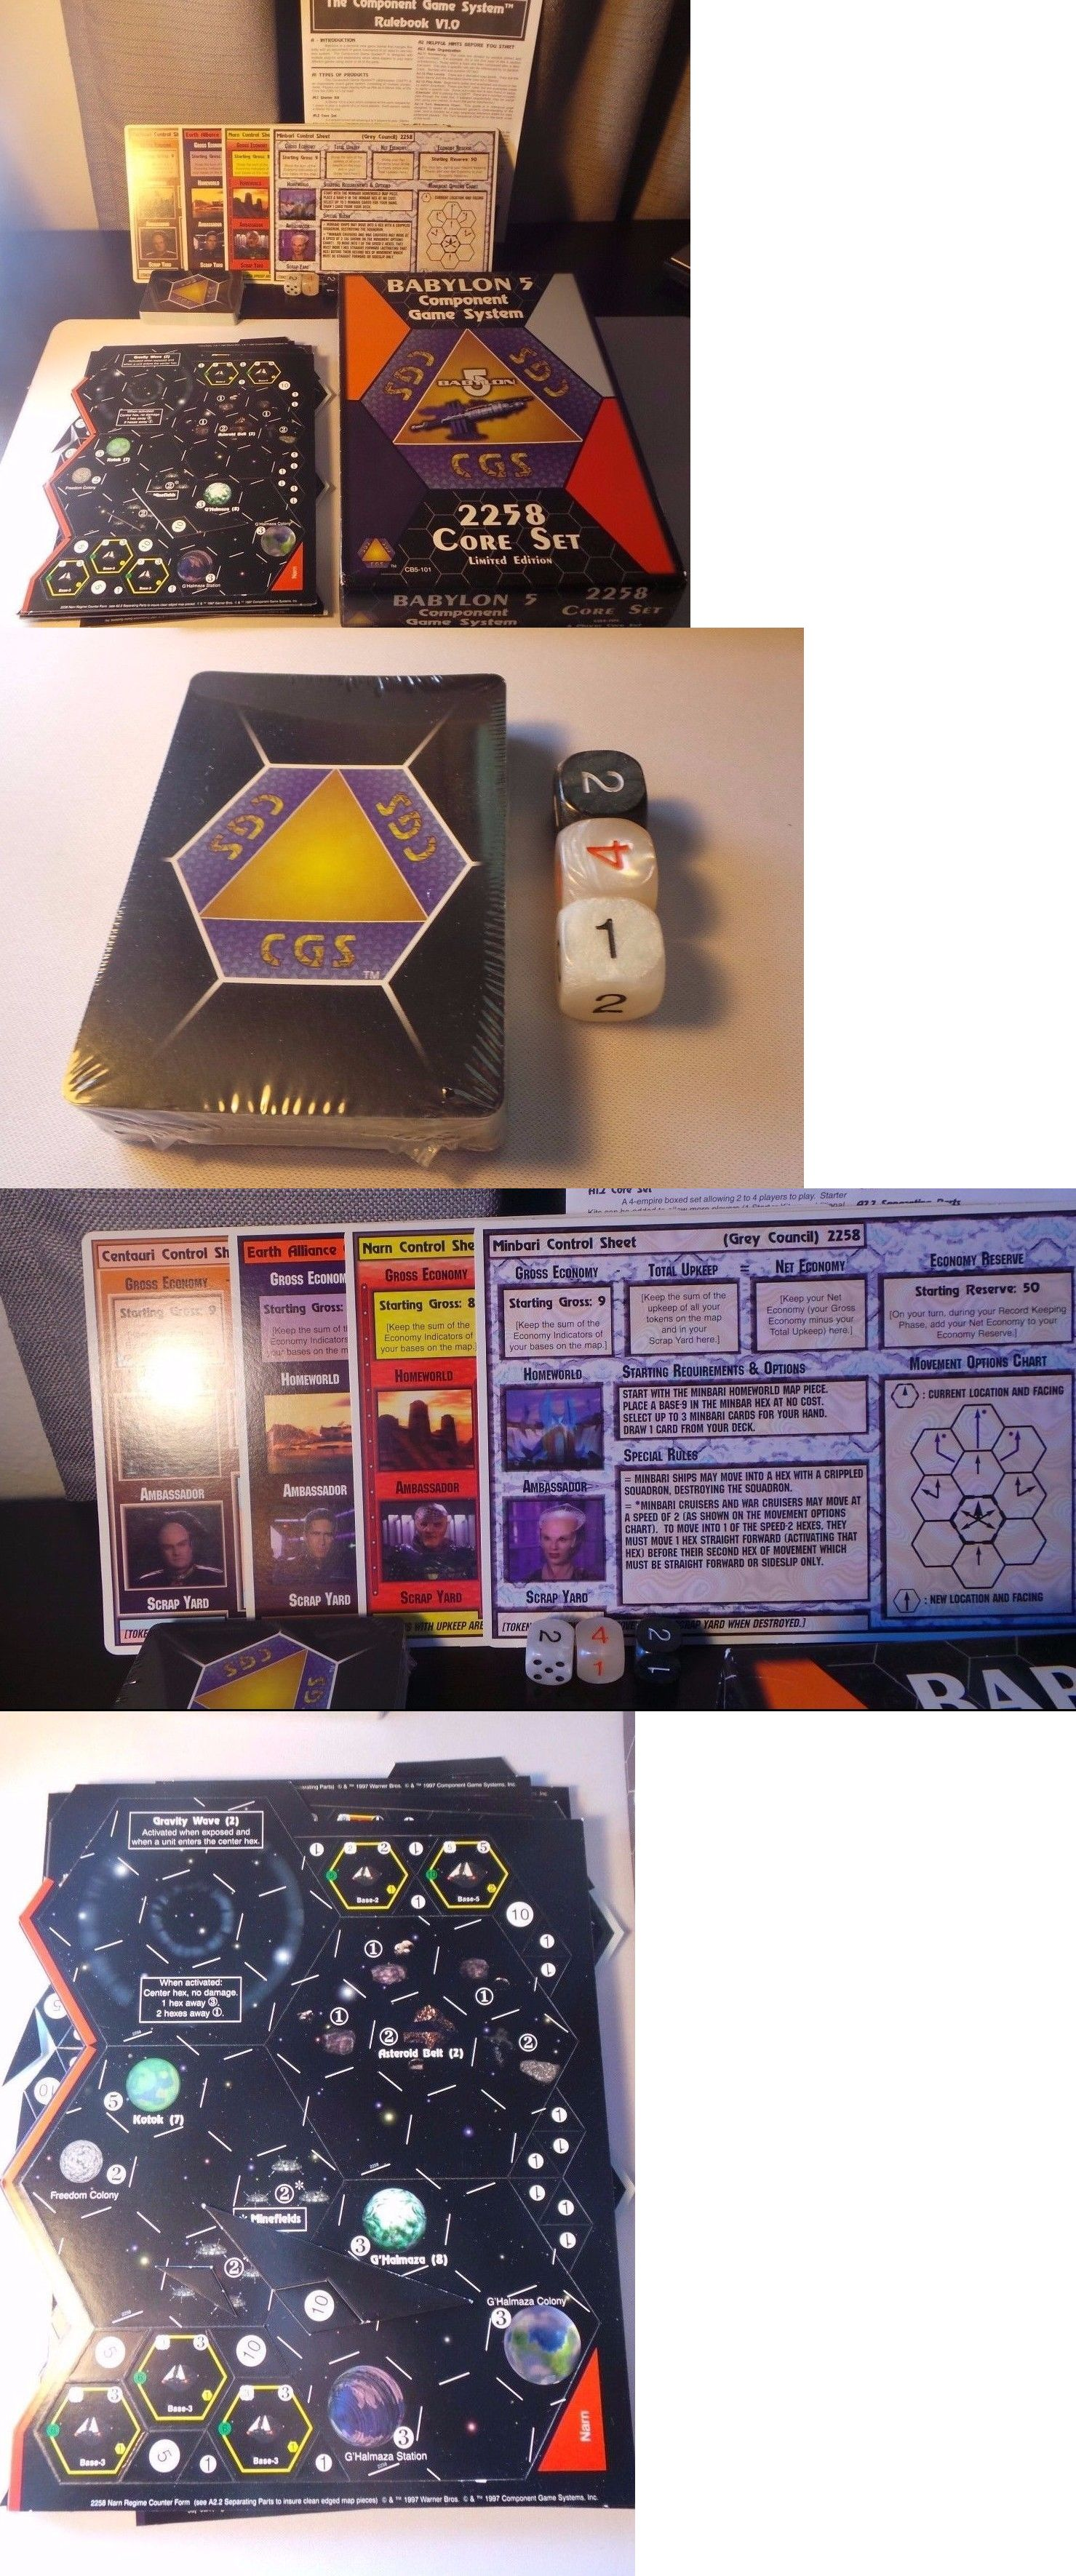 Miniatures, War Games Rare Babylon 5 Limited Edition Component Game Cgs 2258 Core Set Toys & Hobbies